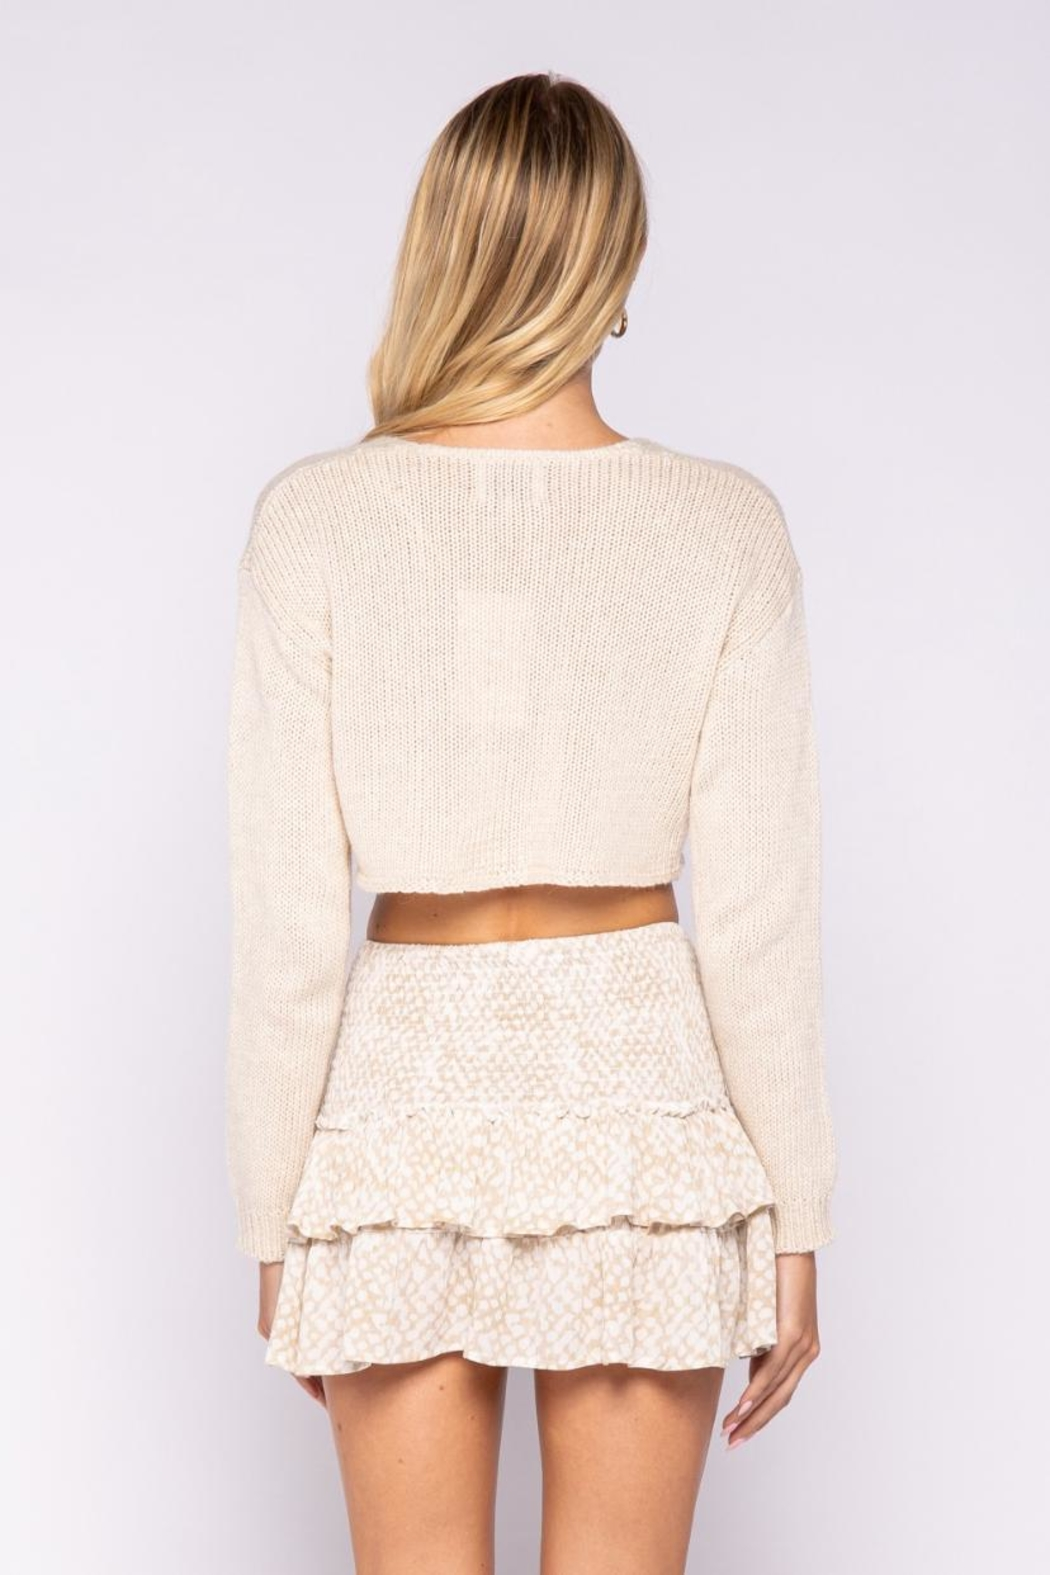 skylar madison Crop Sweater Top - Back Cropped Image